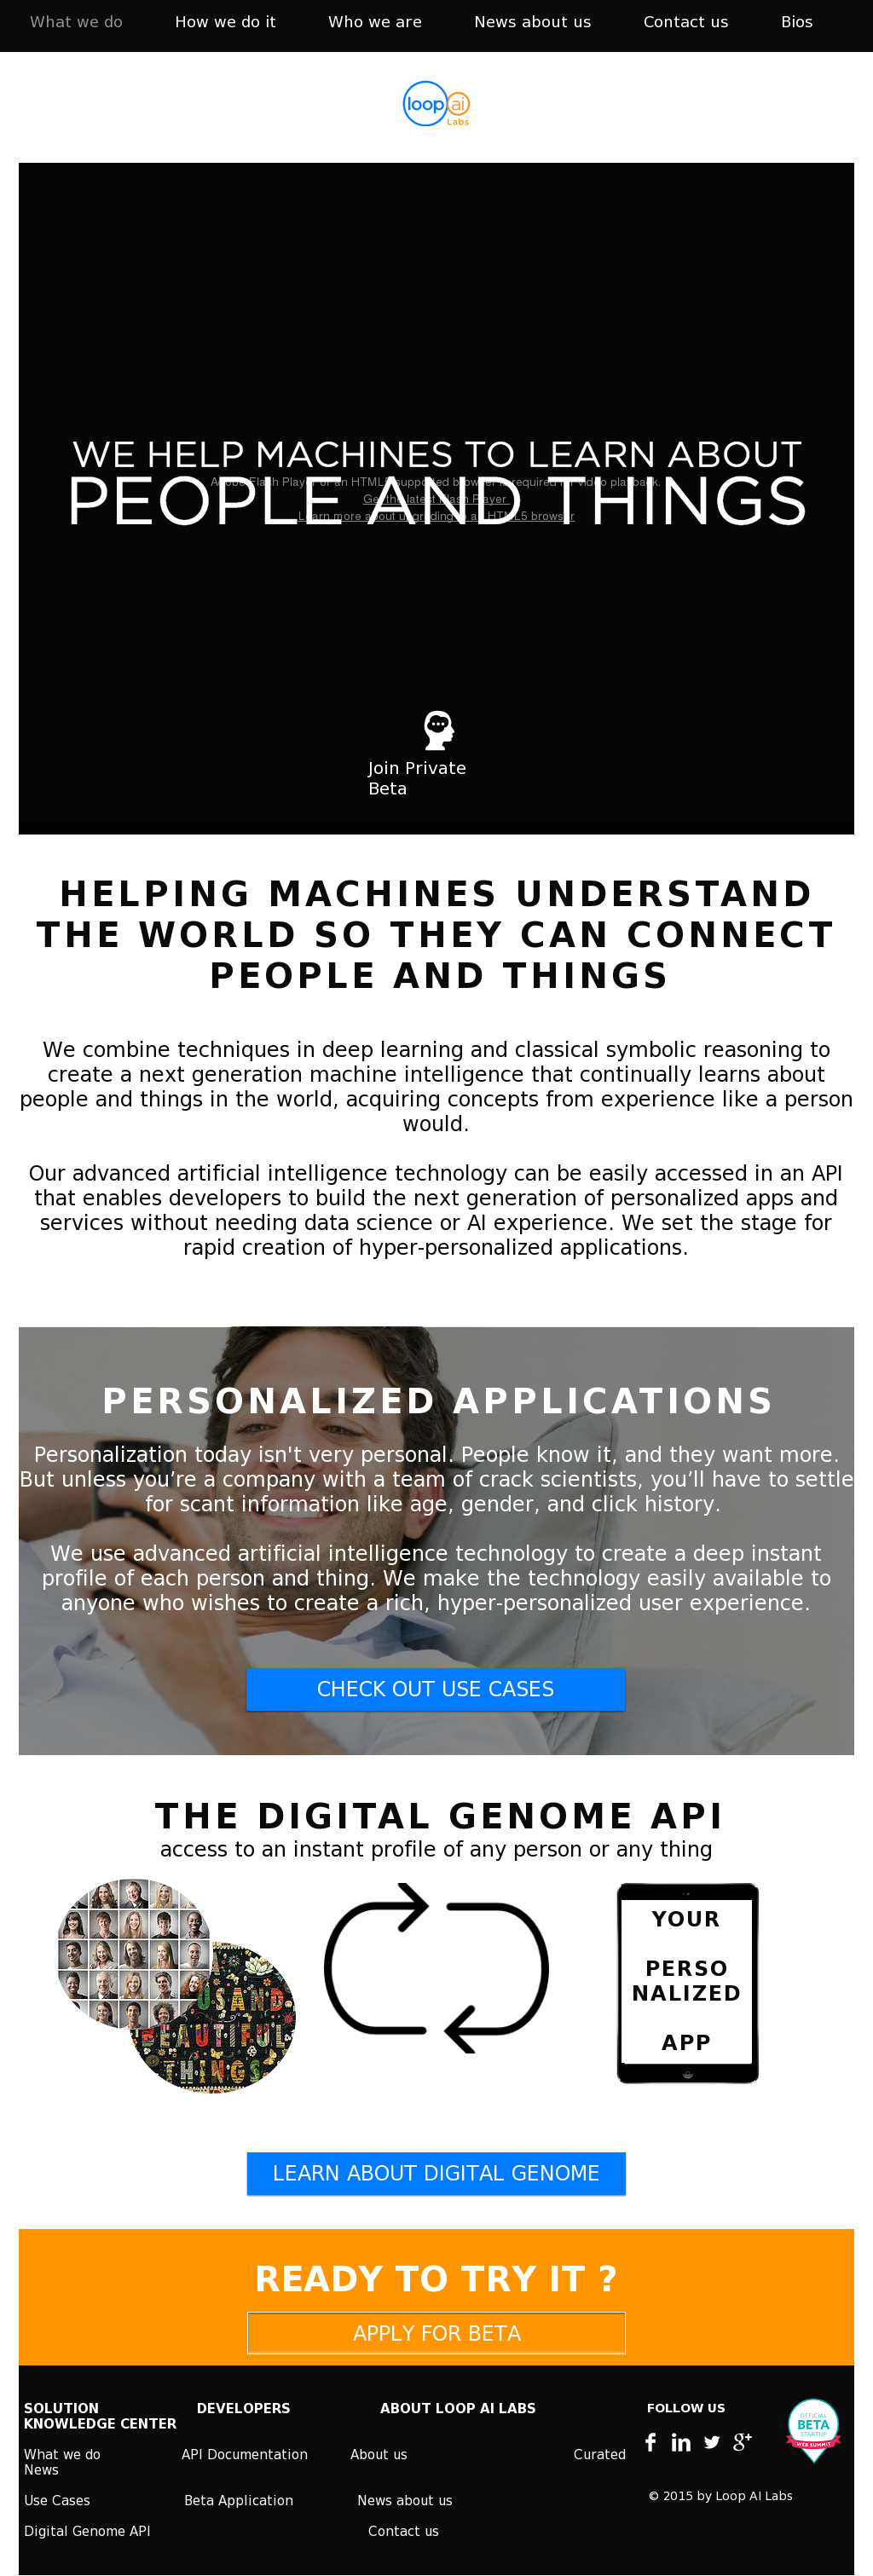 Loop AI Labs Competitors, Revenue and Employees - Owler Company Profile